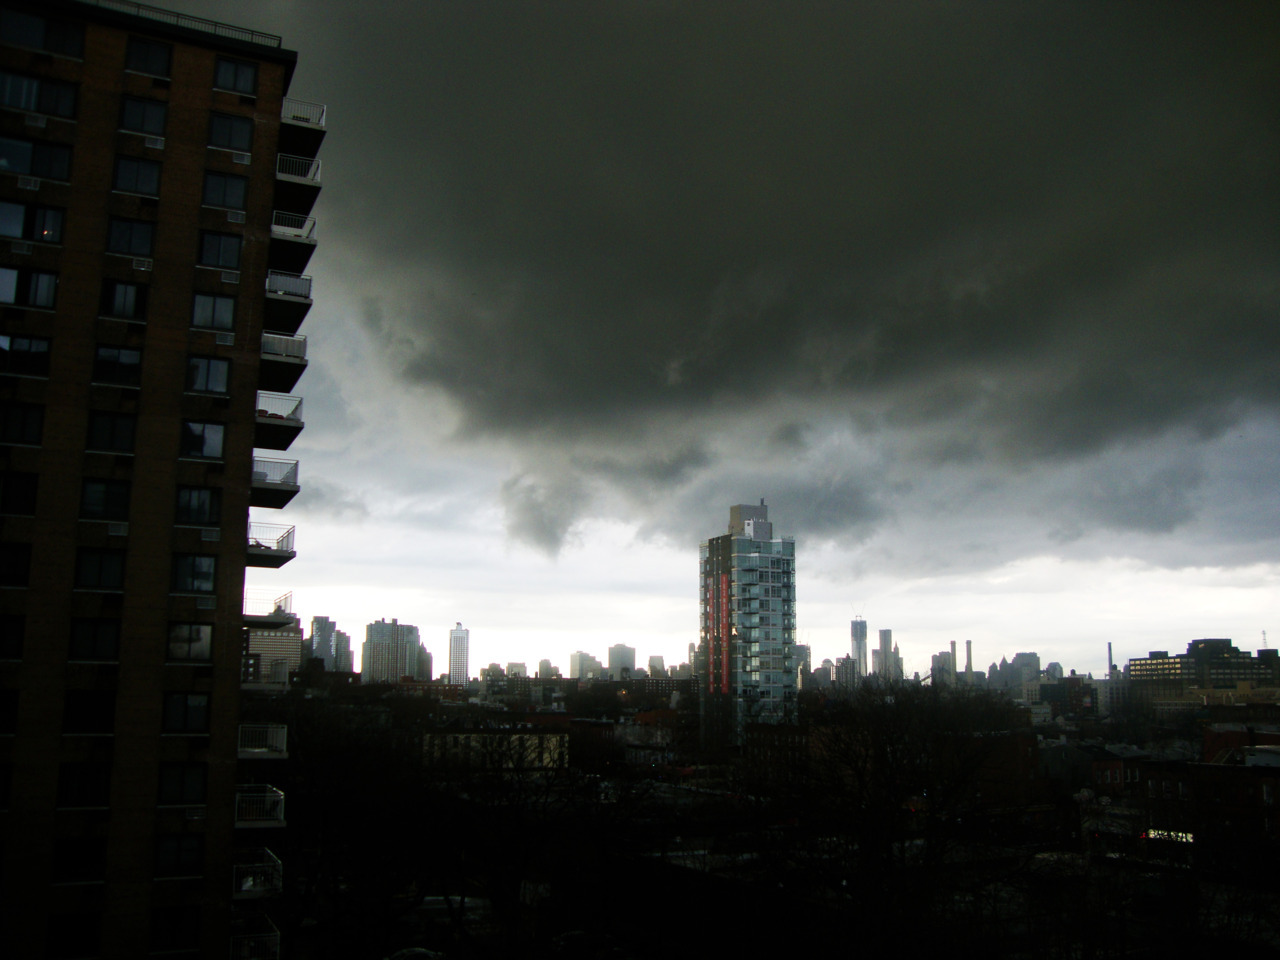 Rainclouds over Brooklyn. Camera: Sony DSC W220.